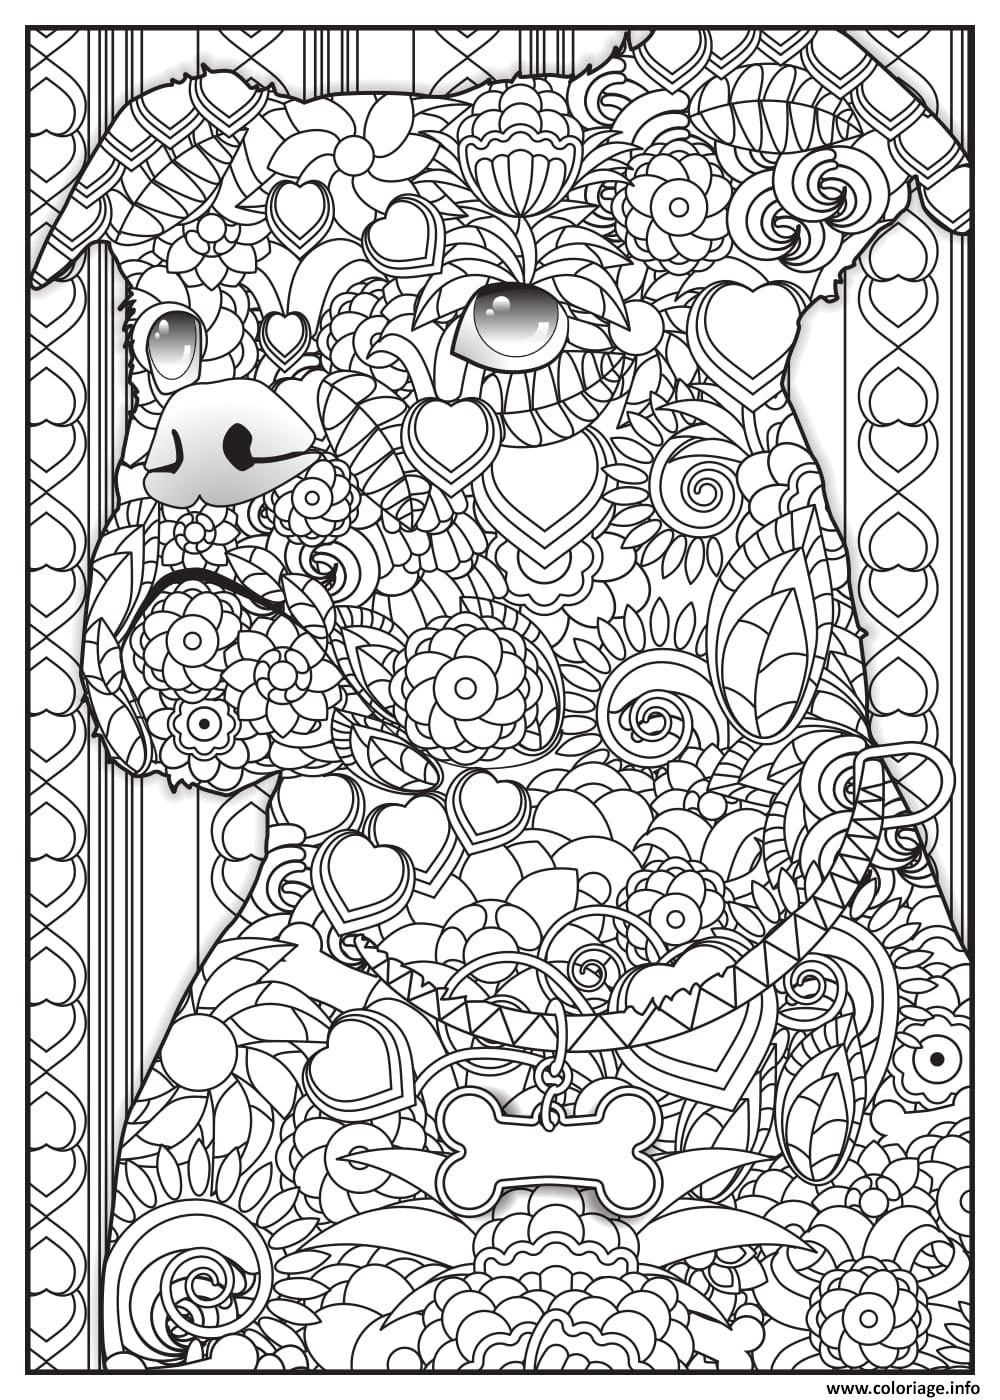 Coloriage chien bulldog adulte animaux - Dessin a colorier adulte ...